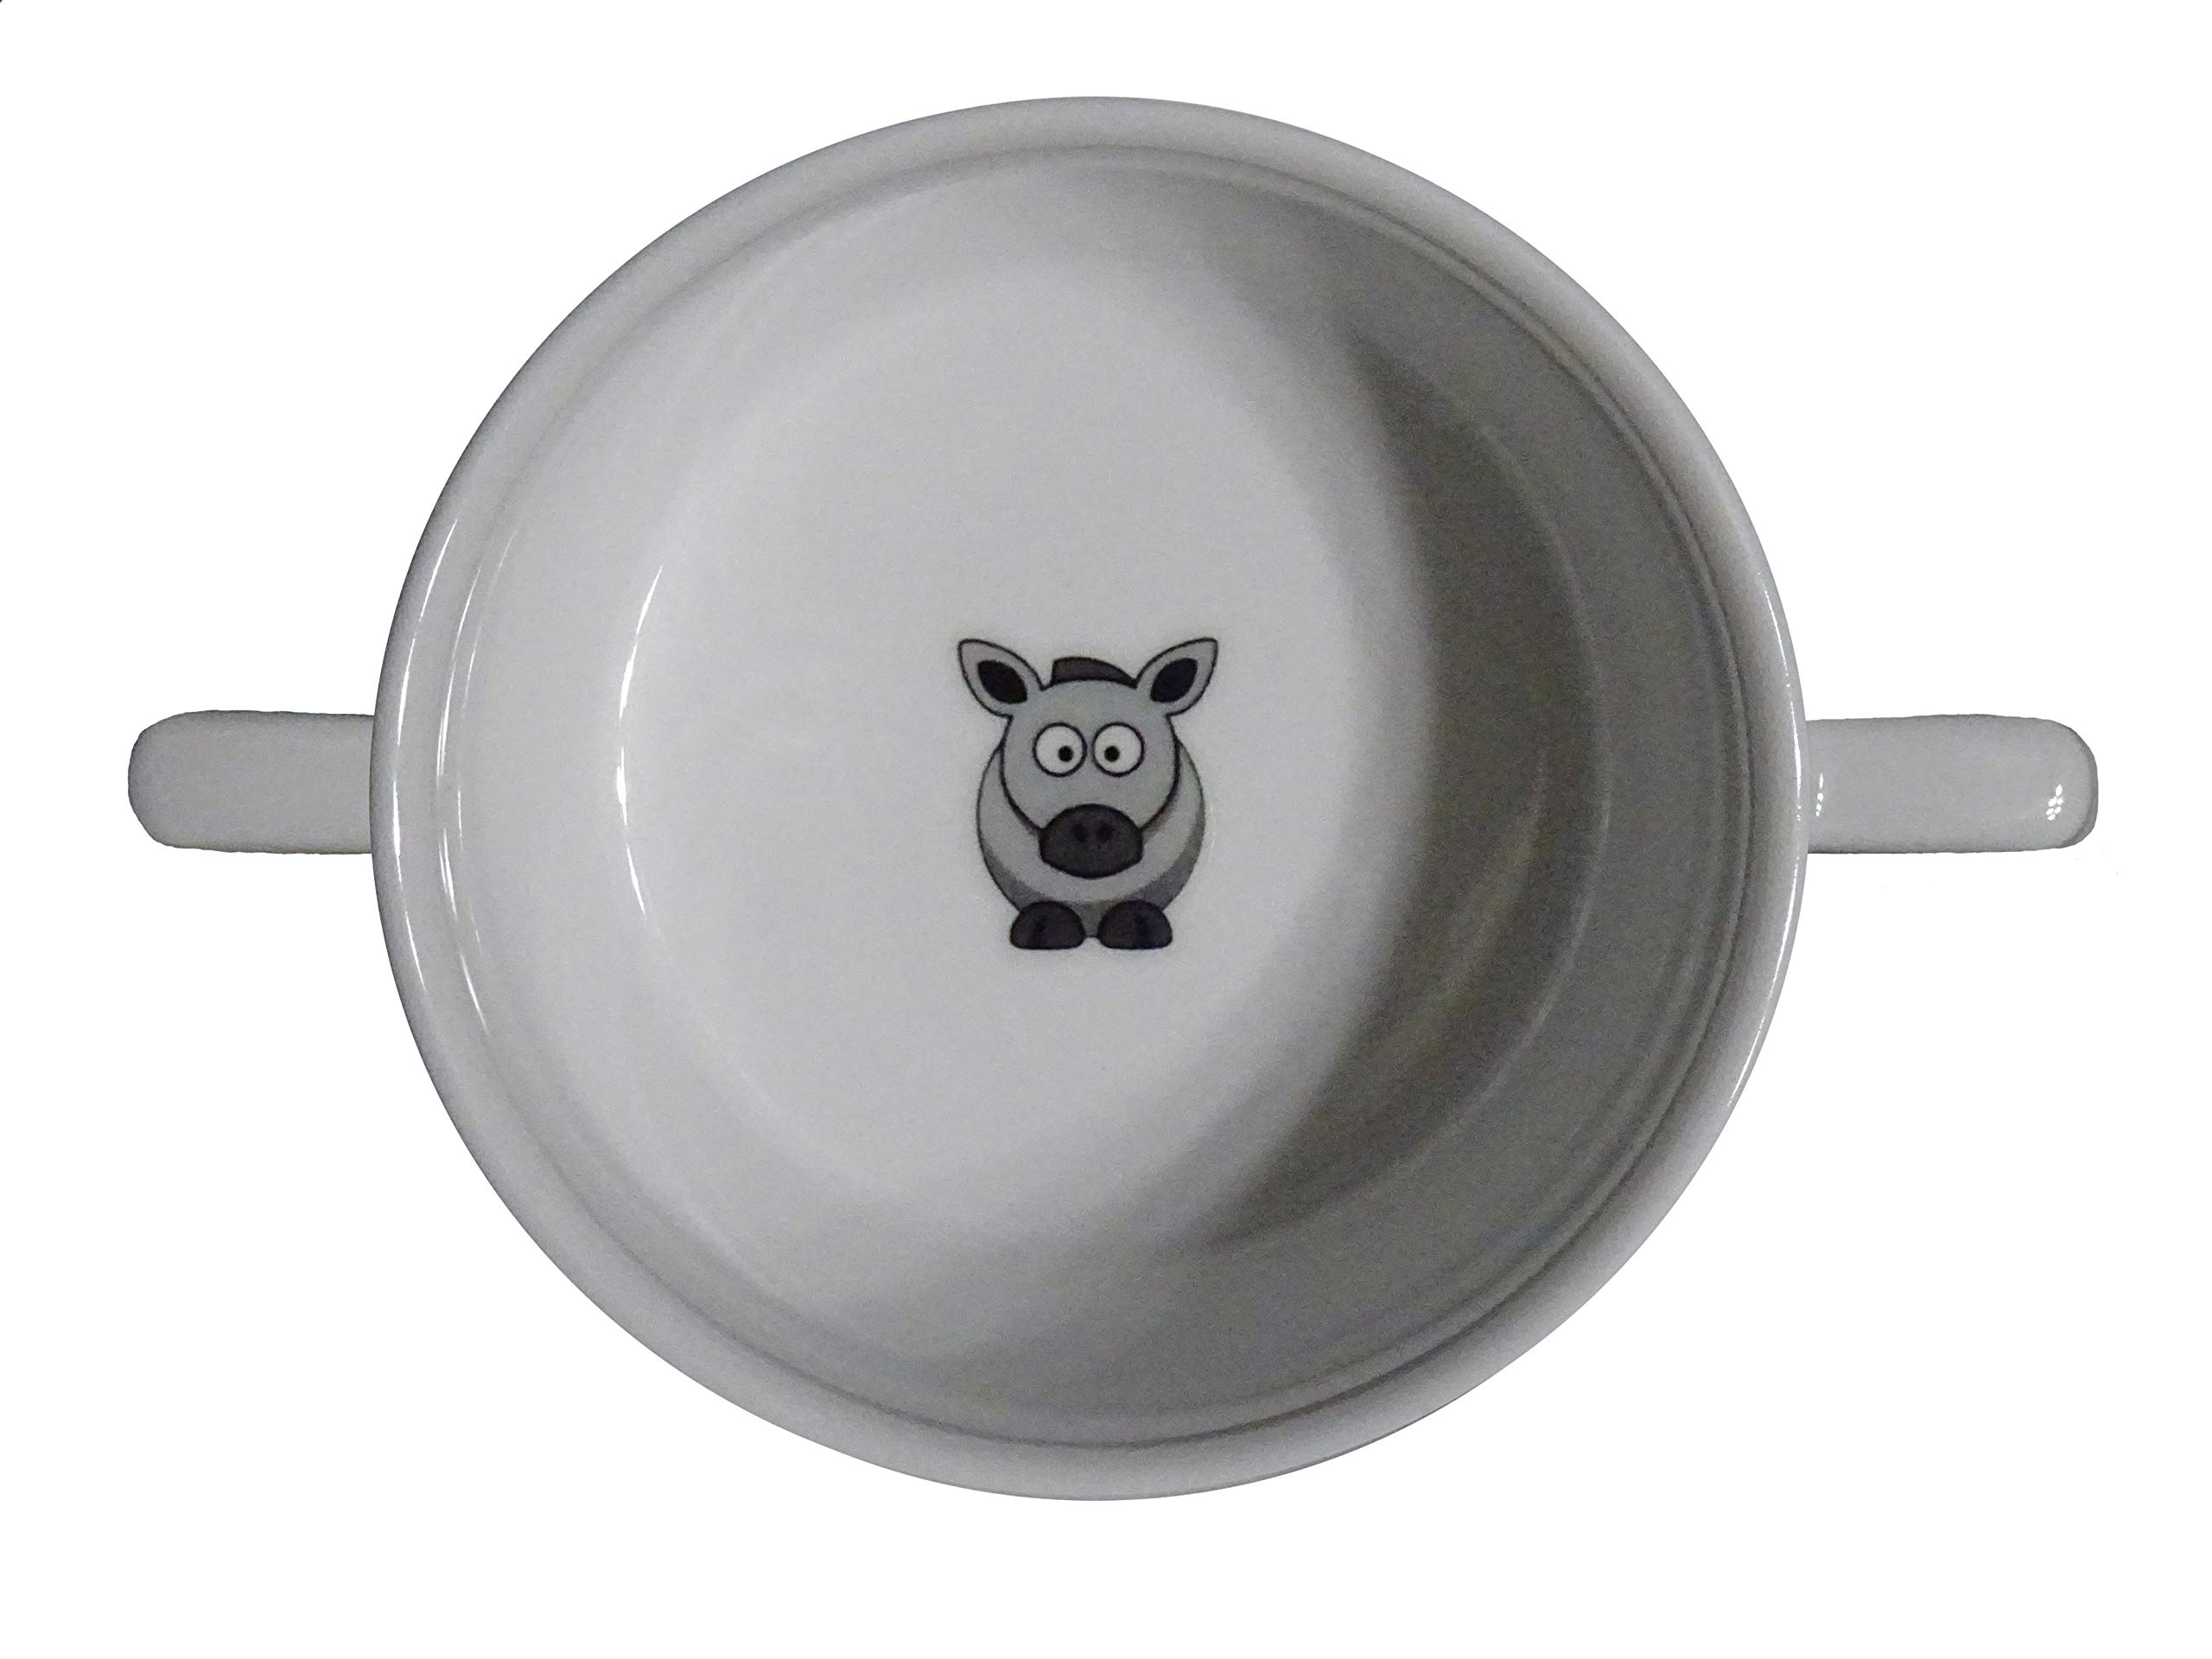 Soup Bowl 14, 1 pcs, Horse Soup Bowl Small Baby Child Kids, Bottom, Hidden Message, Secret Message, Animal,Donkey, Cartoon, Cute Animals, Farm, Horse, Kids, Porcelain